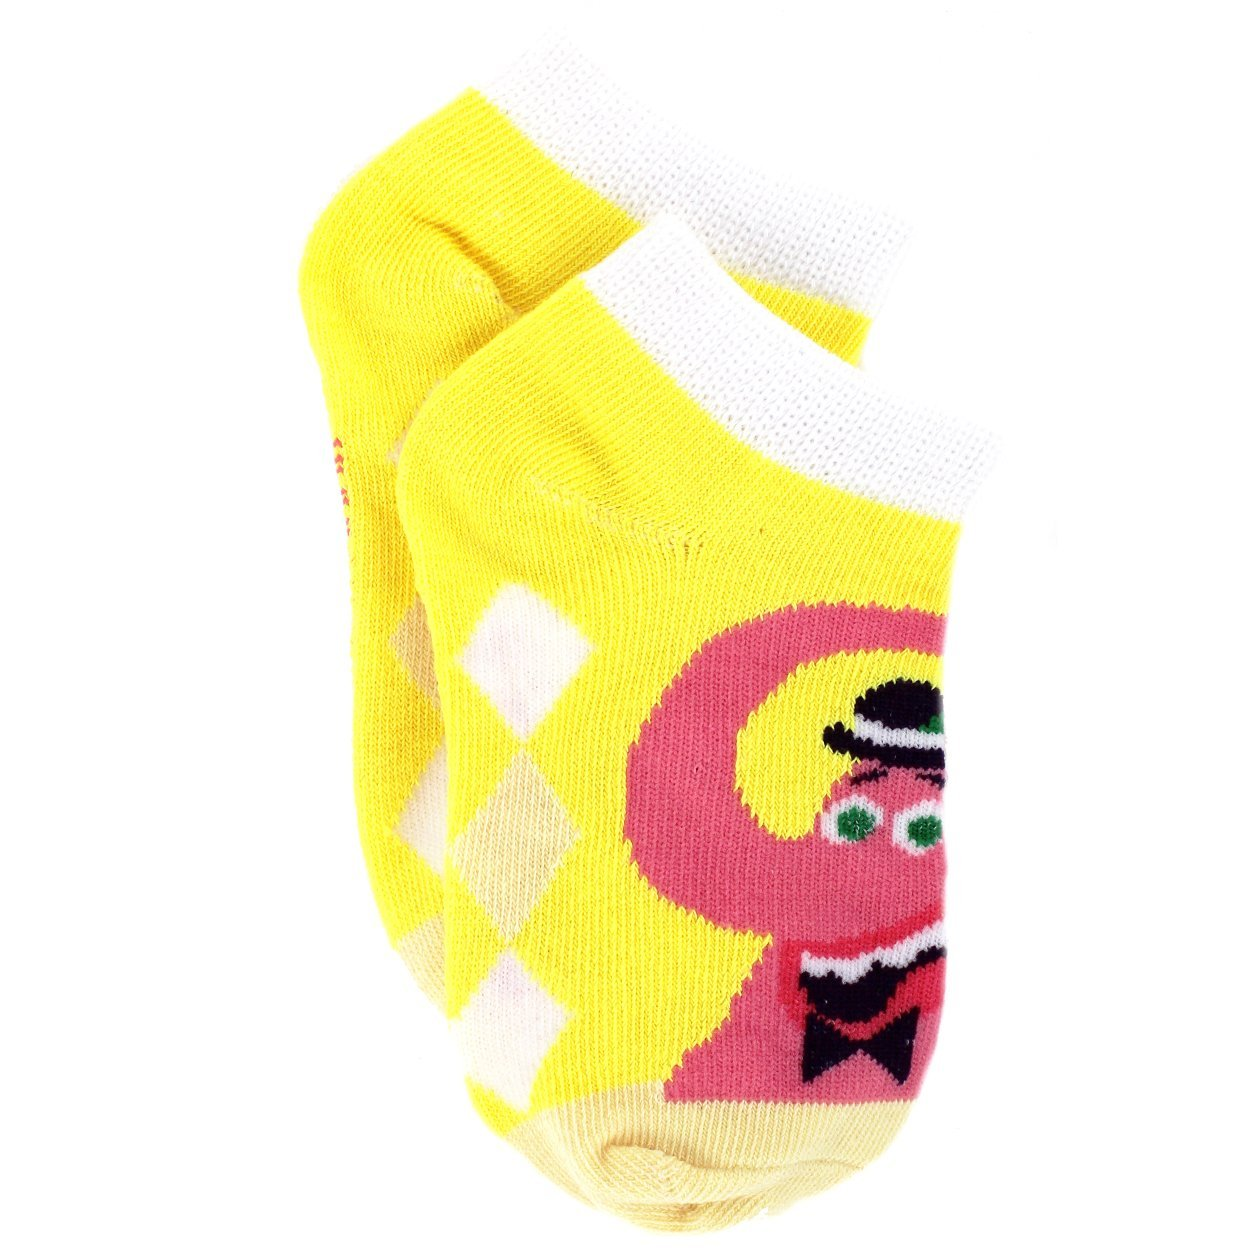 Toddler//Little Kid//Big Kid//Teen//Adult Inside Out Emotions Girls 6 pack Socks